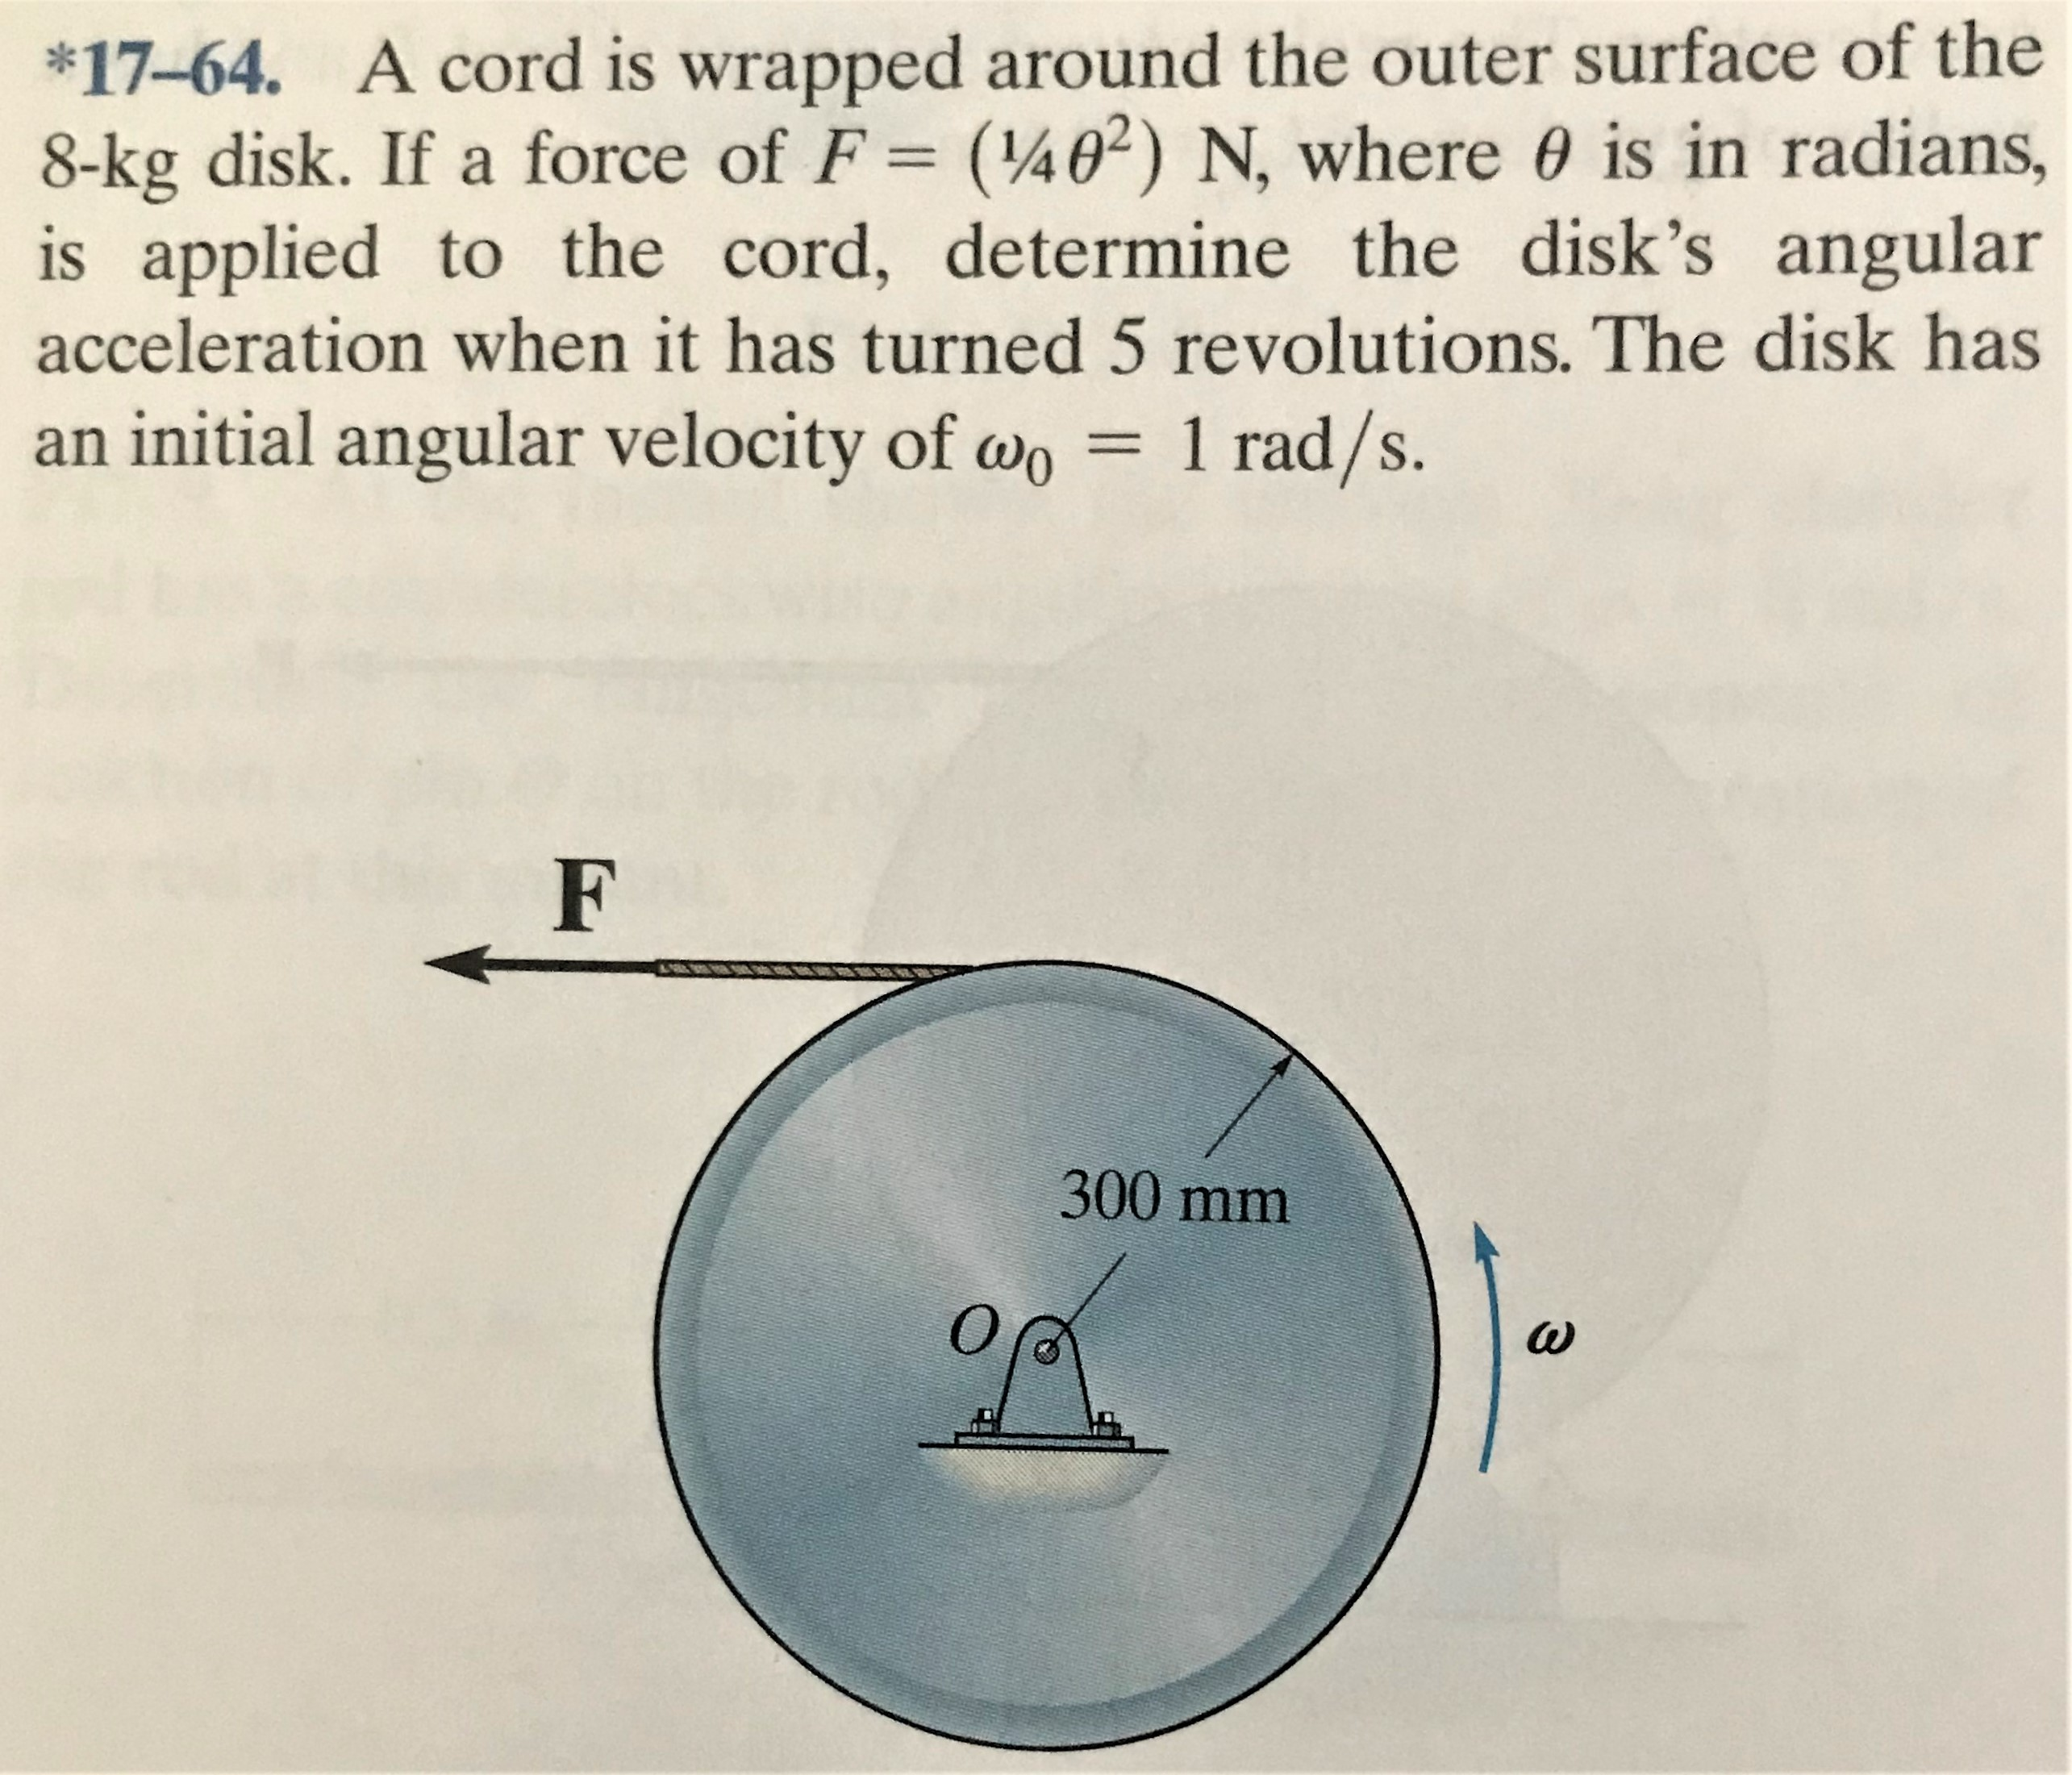 *17-64. A cord is wrapped around the outer surface of the 8-kg disk. If a force of F = (¼0²) N, where 0 is in radians, is applied to the cord, determine the disk's angular acceleration when it has turned 5 revolutions. The disk has an initial angular velocity of wo = %3D 1 rad/s. 300mm